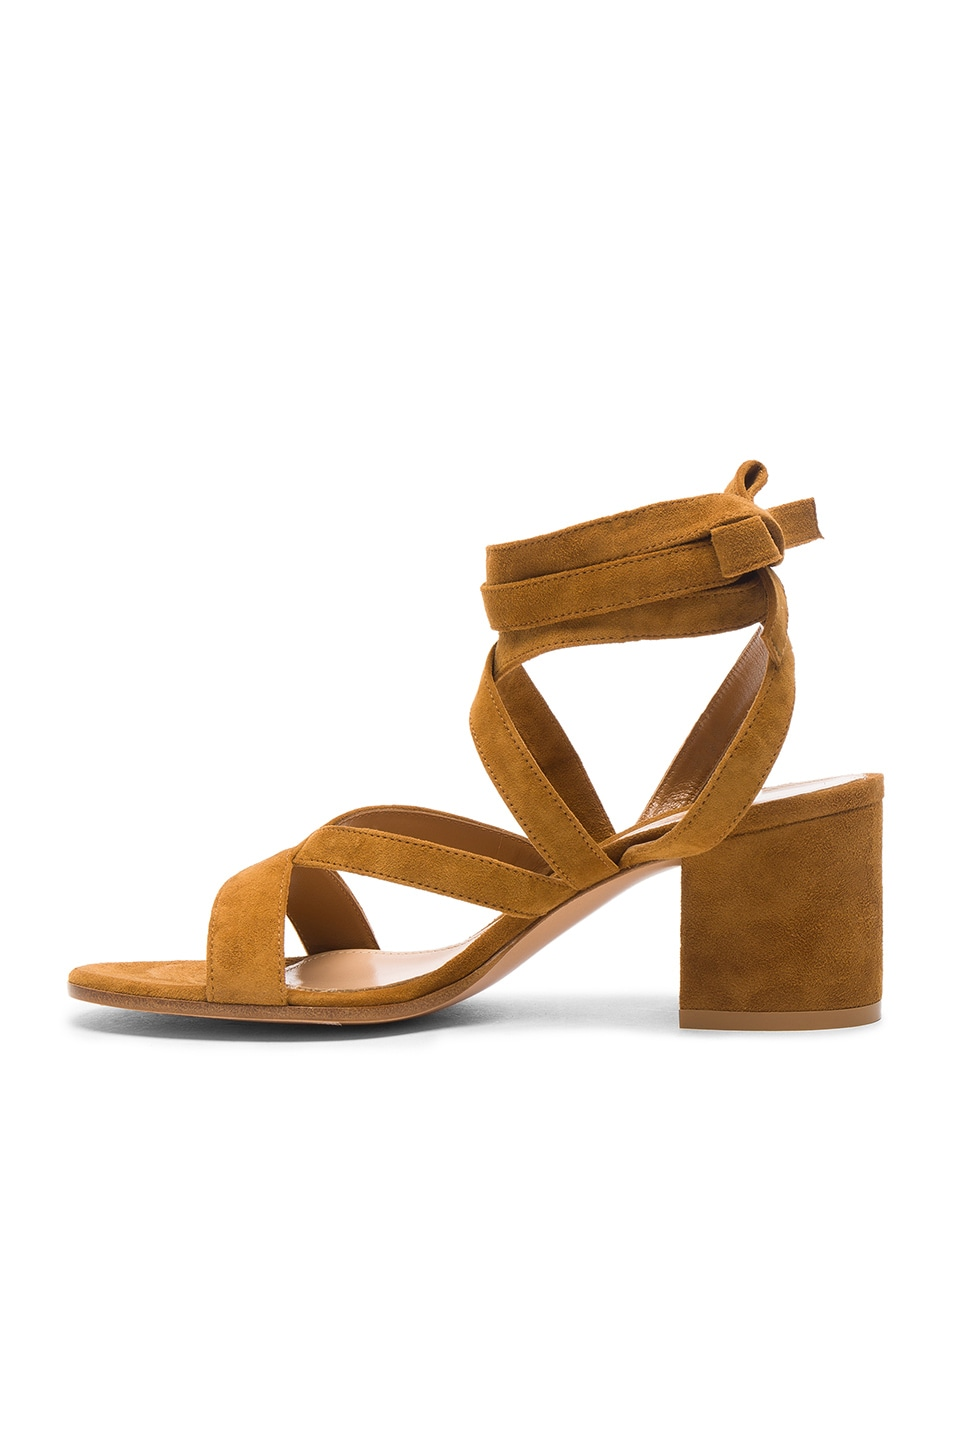 Image 5 of Gianvito Rossi Suede Janis Low Sandals in Almond